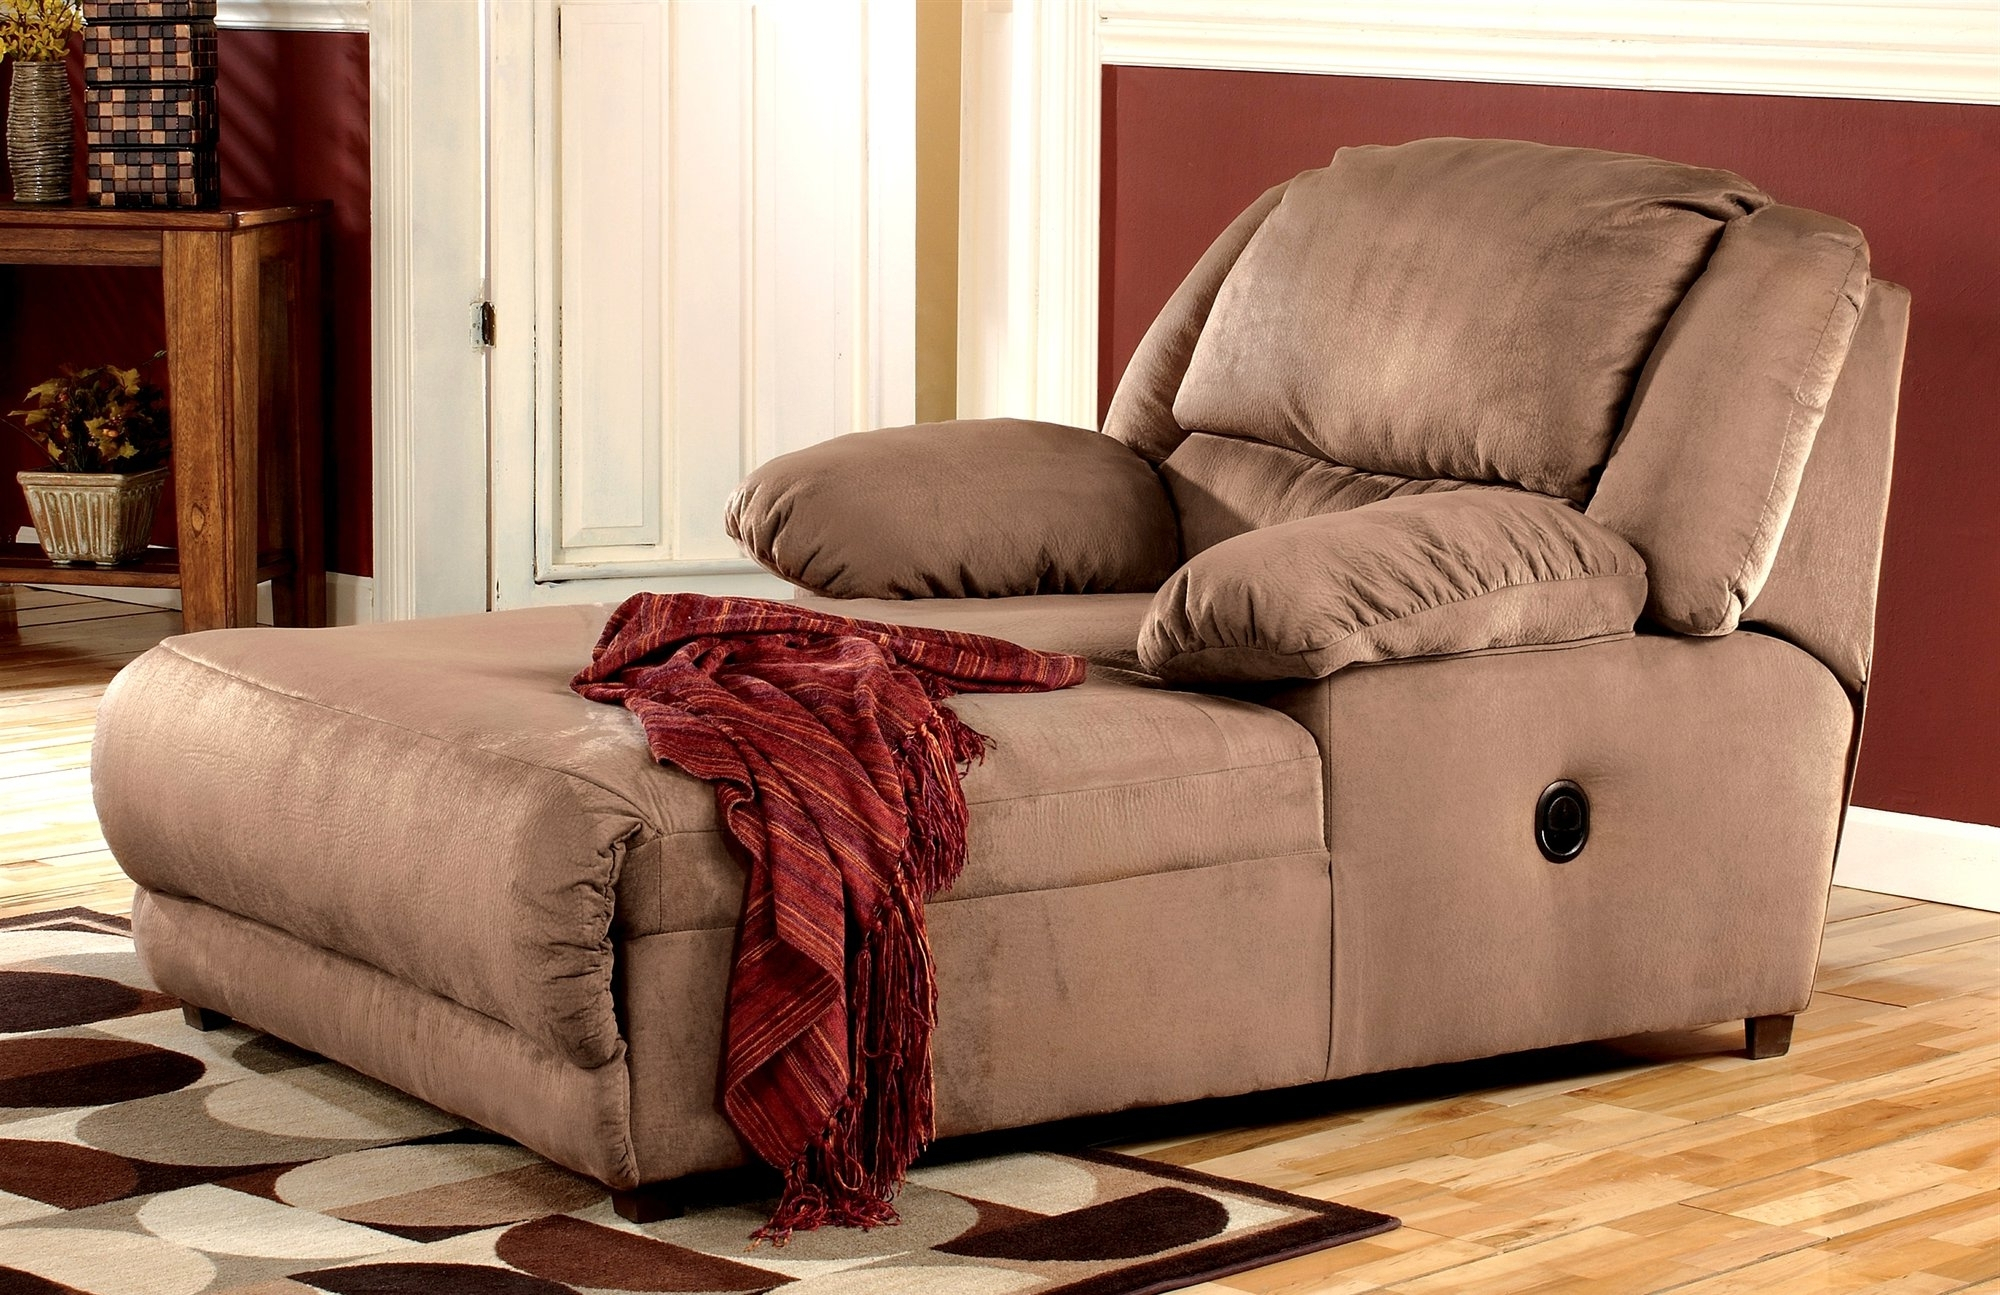 Famous Lounge Chair : Velvet Chaise Lounge Chair Chaise Longue For Sale Inside Comfy Chaise Lounges (View 9 of 15)